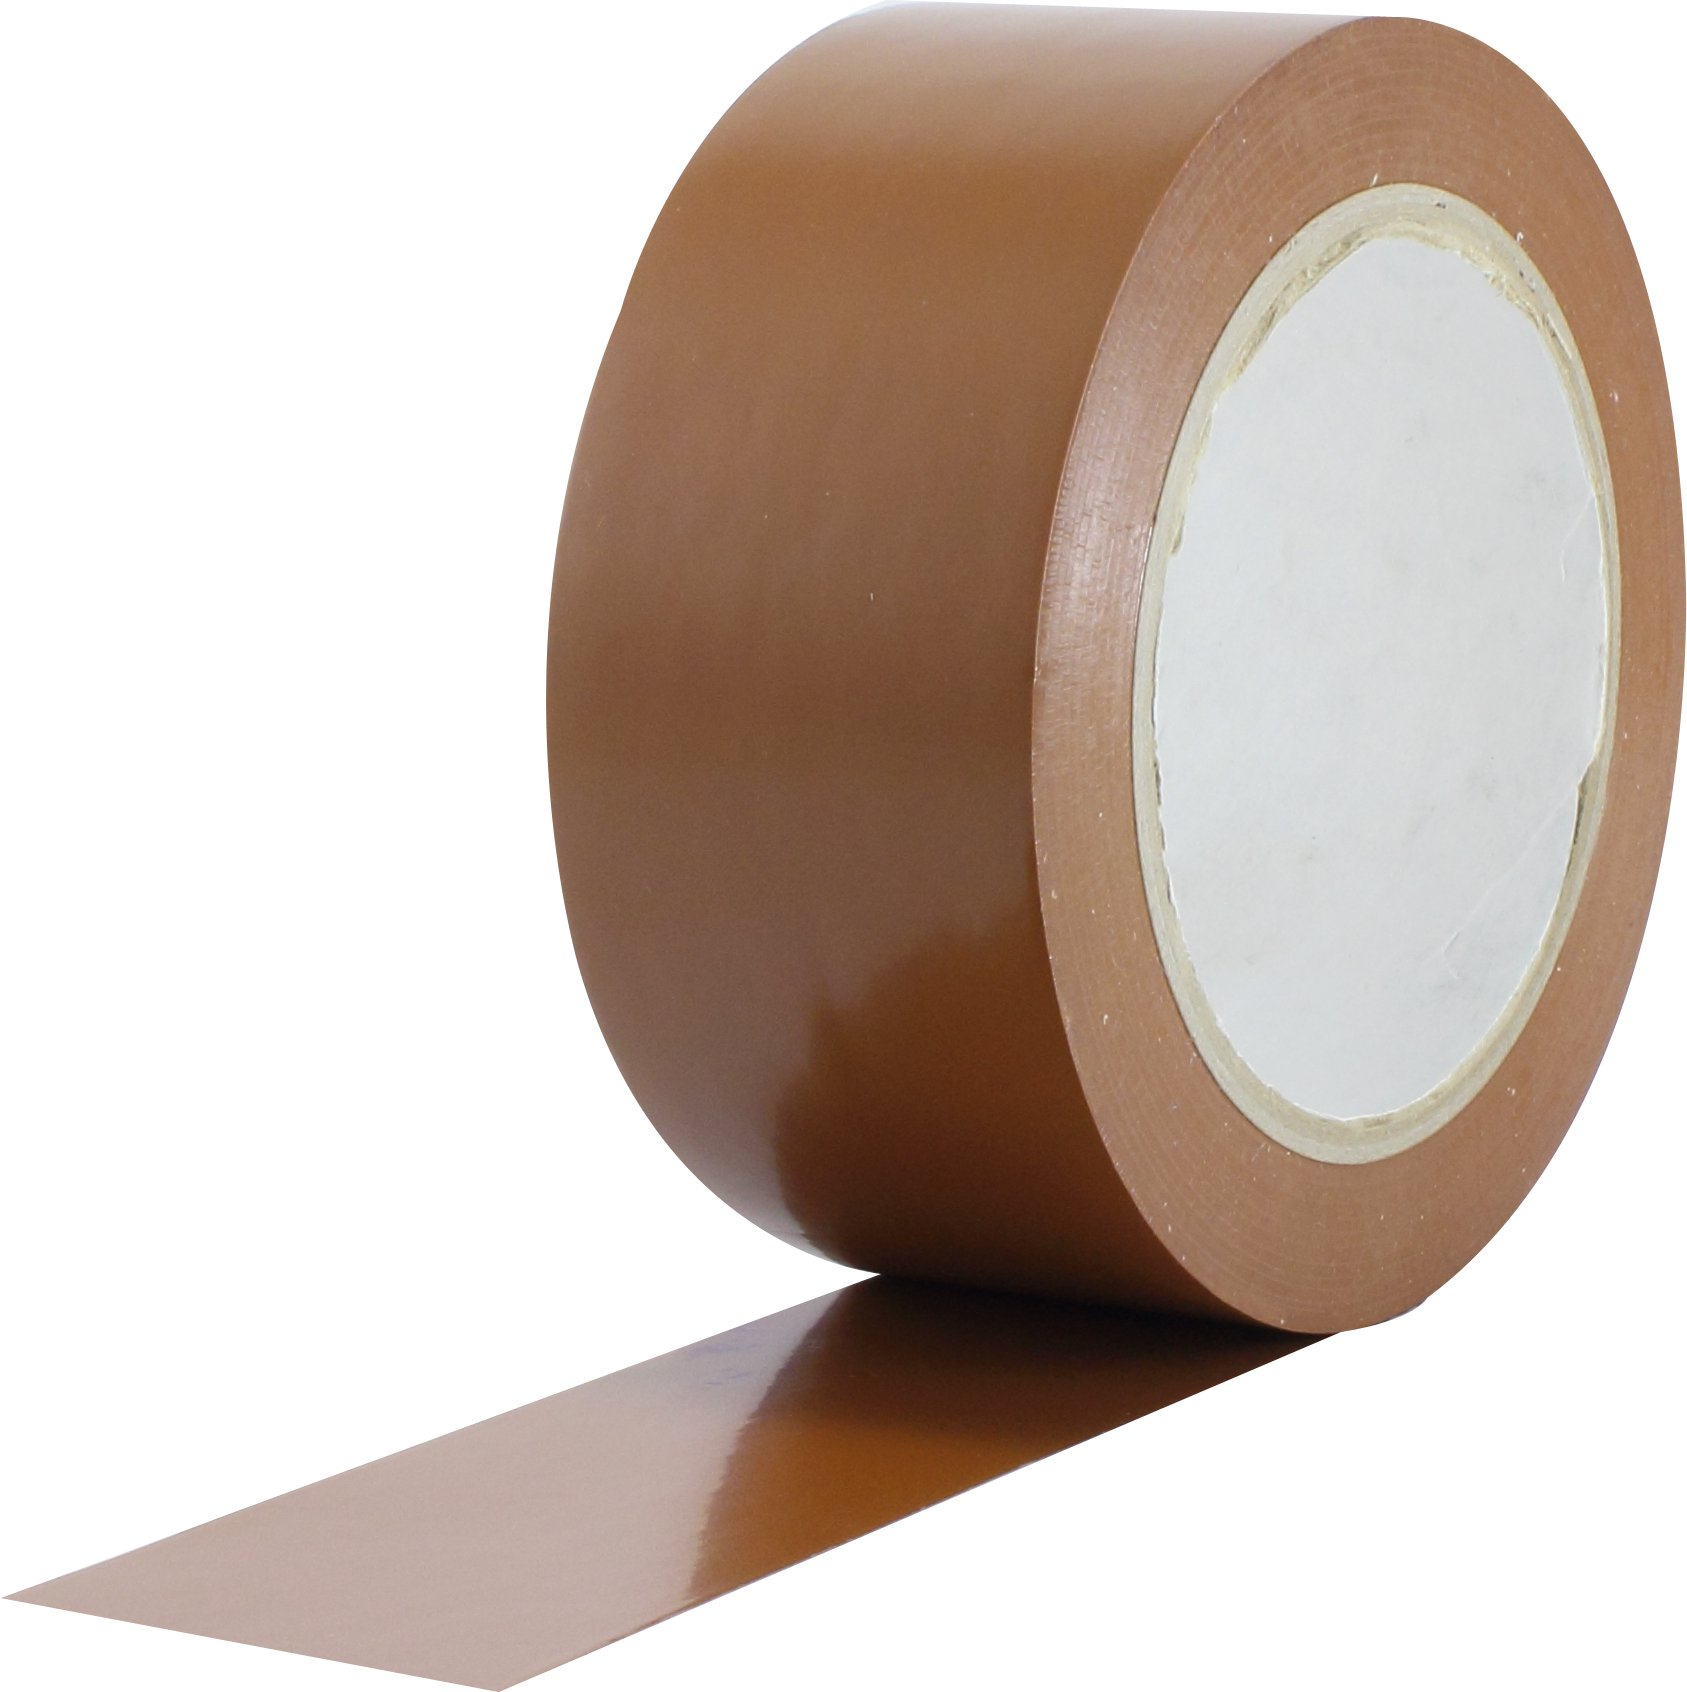 ProTapes Pro 50 Premium Vinyl Safety Marking and Dance Floor Splicing Tape, 6 mils Thick, 36 yds Length x 2'' Width, Brown (Pack of 1)